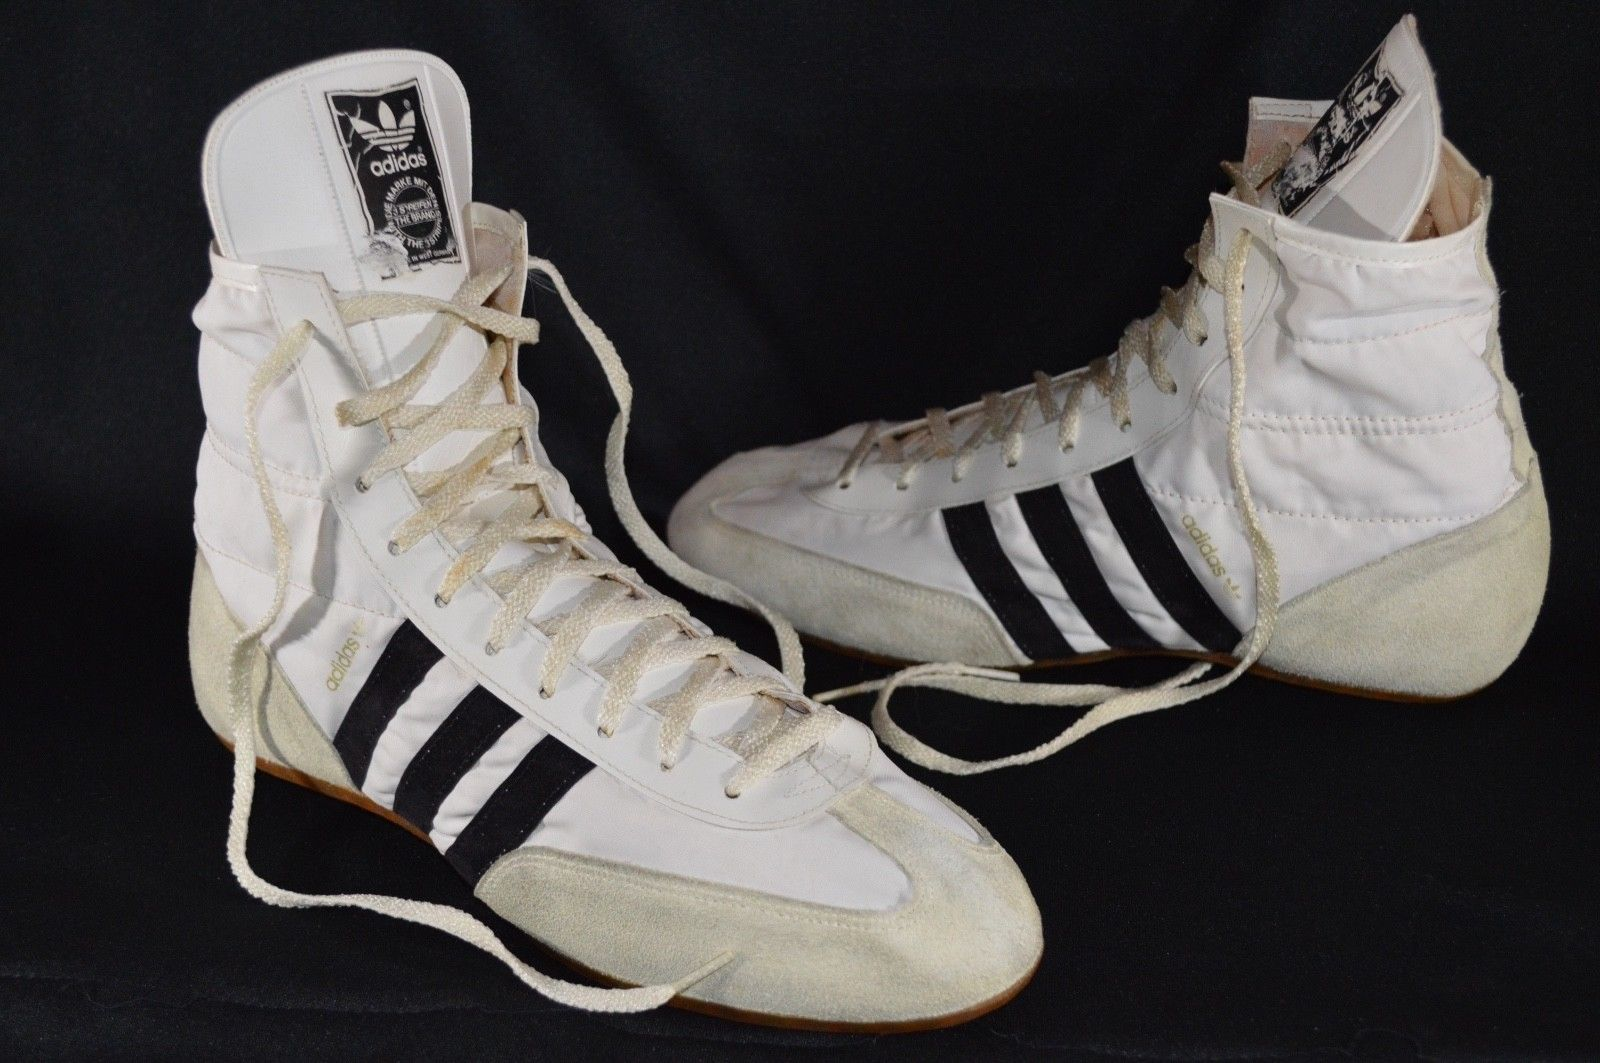 ecdab19da174 Vintage Adidas 80 s Hight Top White Boots Freddie Mercury Wrestling Shoes  Size 8